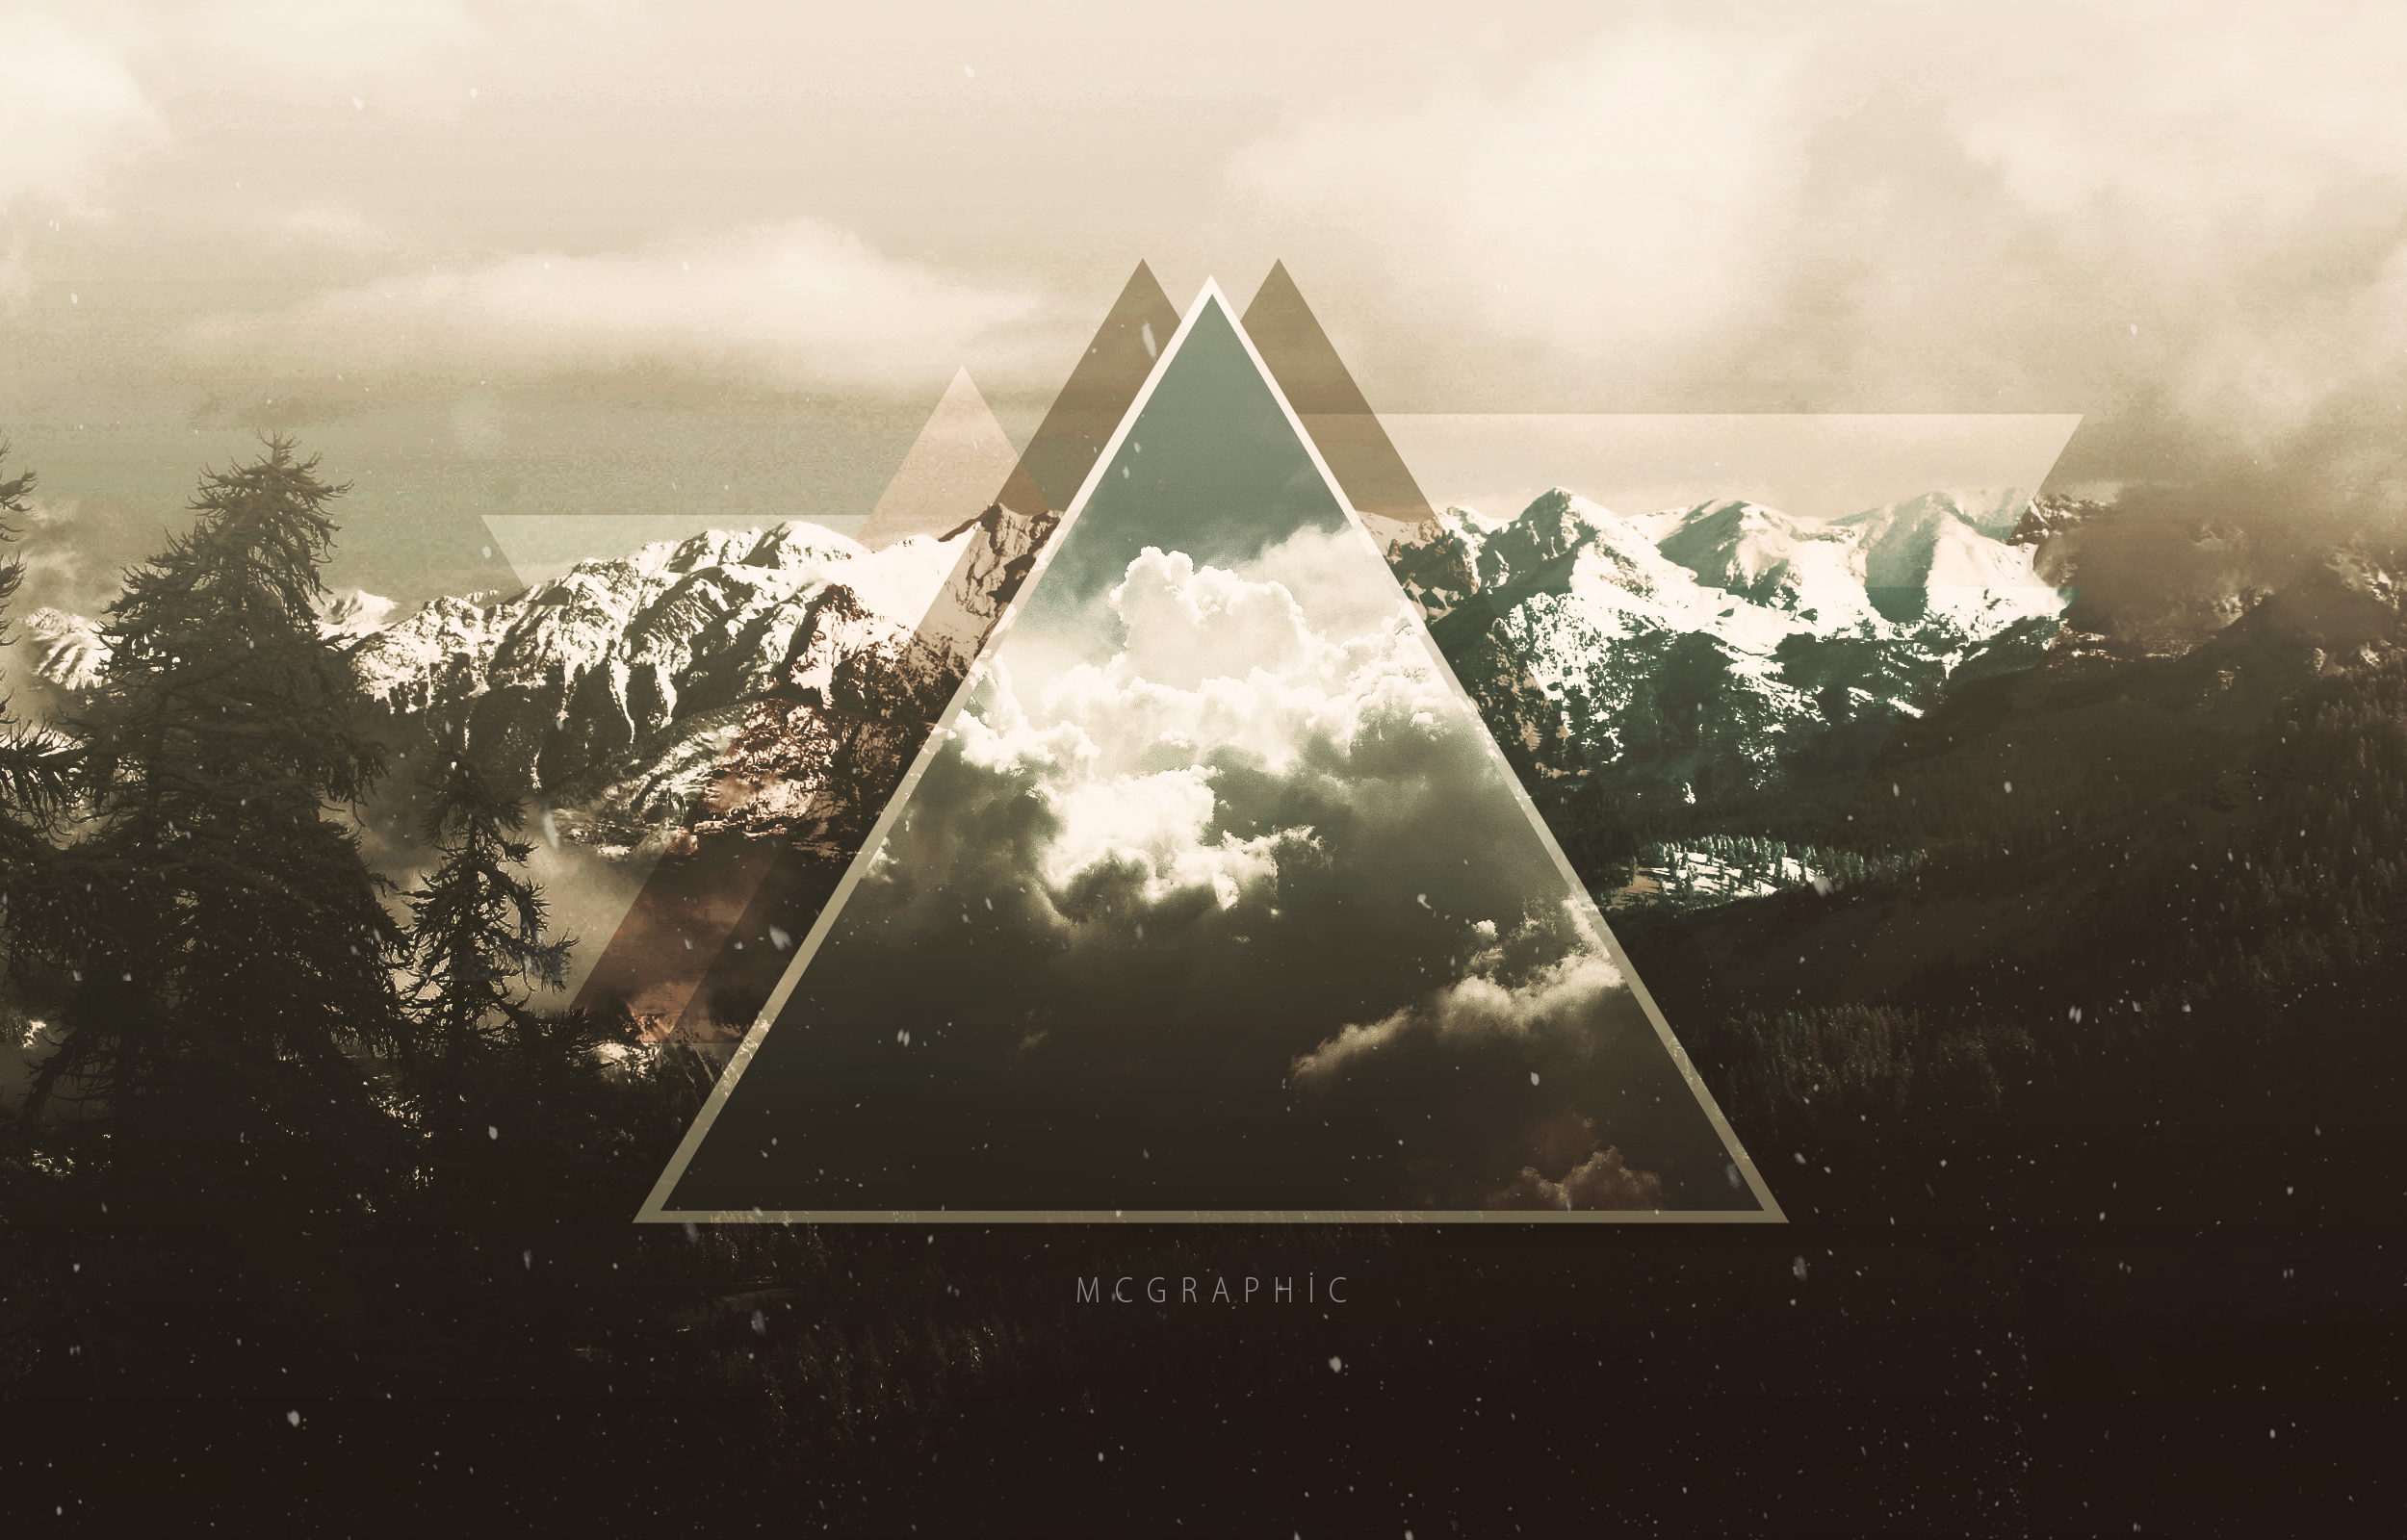 Love Triangle Wallpapers : TRIANGLE WALLPAPER TUMBLR by McGraphic on DeviantArt